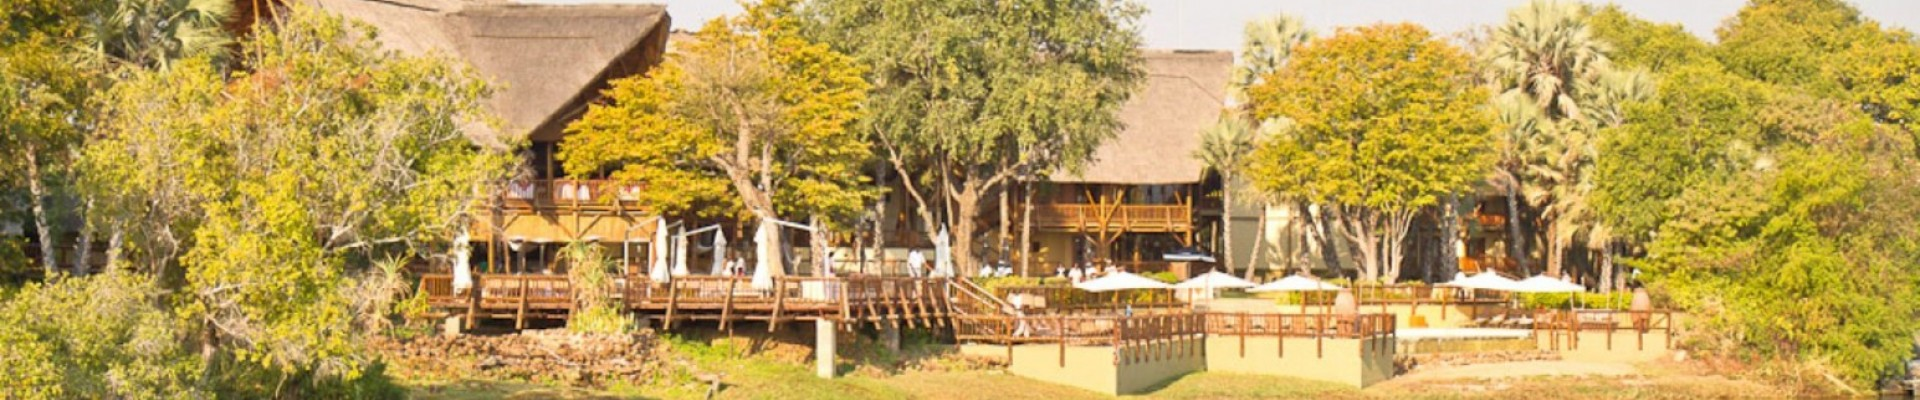 4* David Livingstone Safari Lodge and Spa - Zambia Package - (3 Nights)